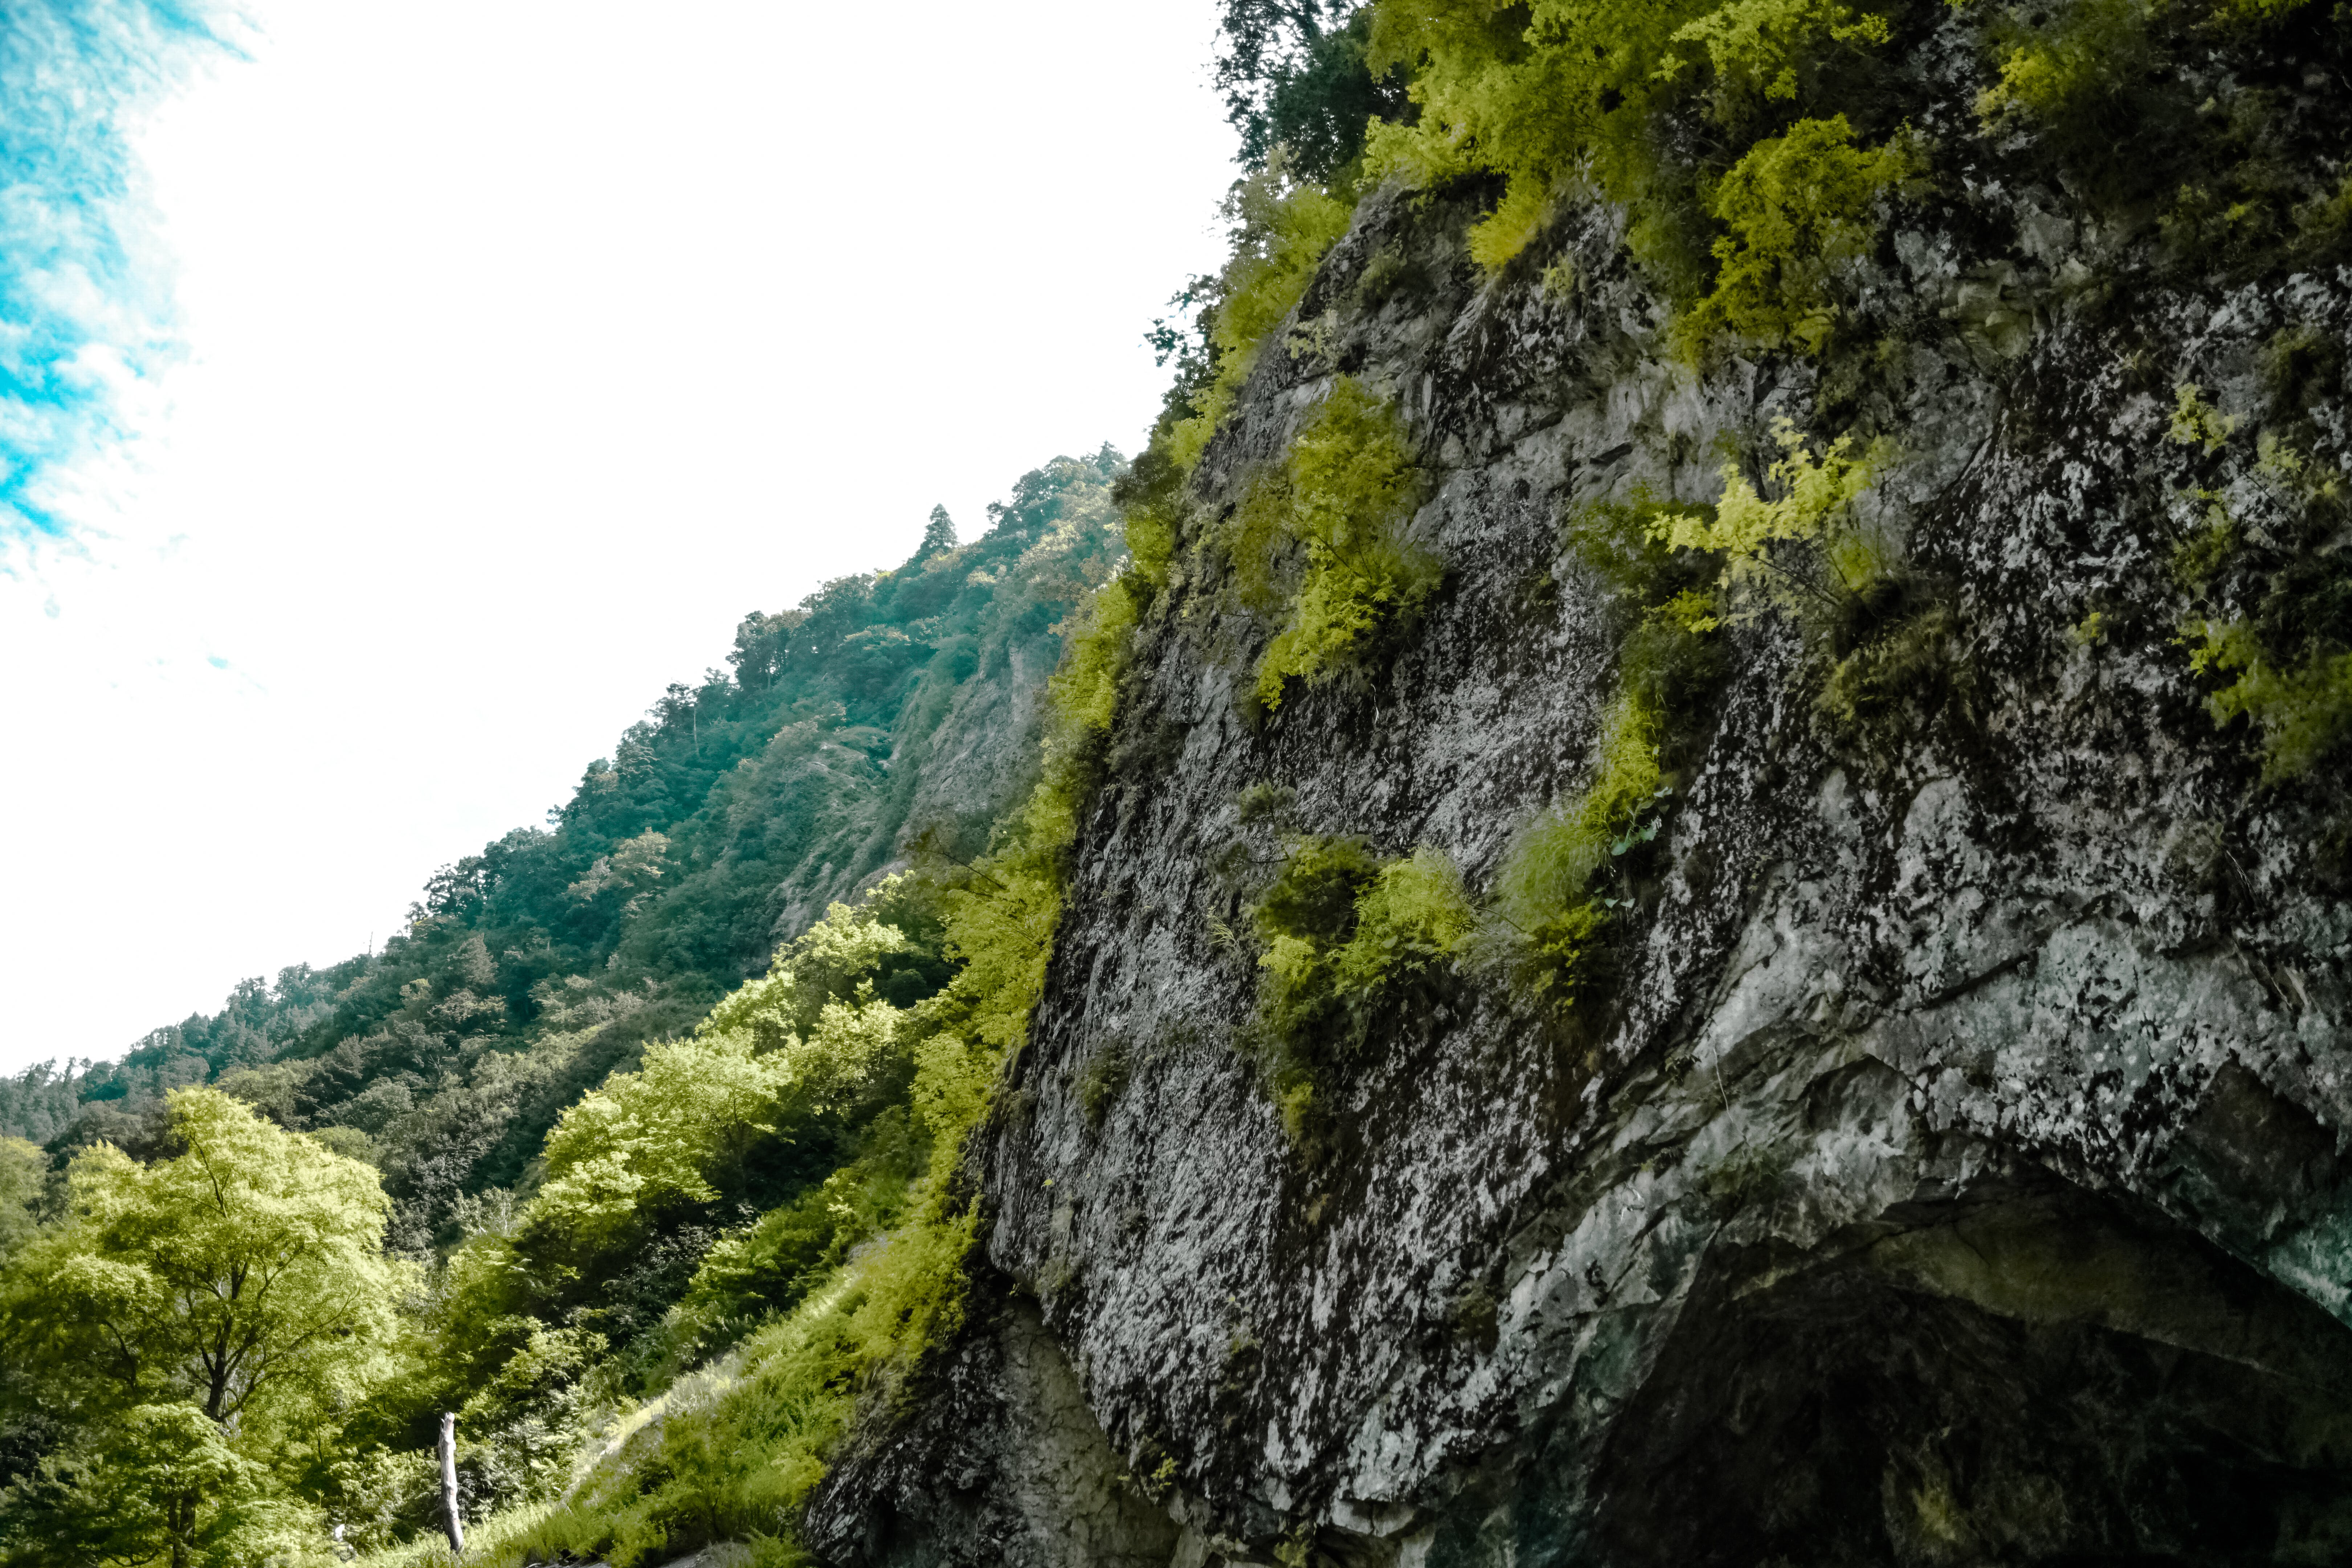 Low Angle Photography of Gray Mountain Side Covered With Green Leaves Under White Sky at Daytime